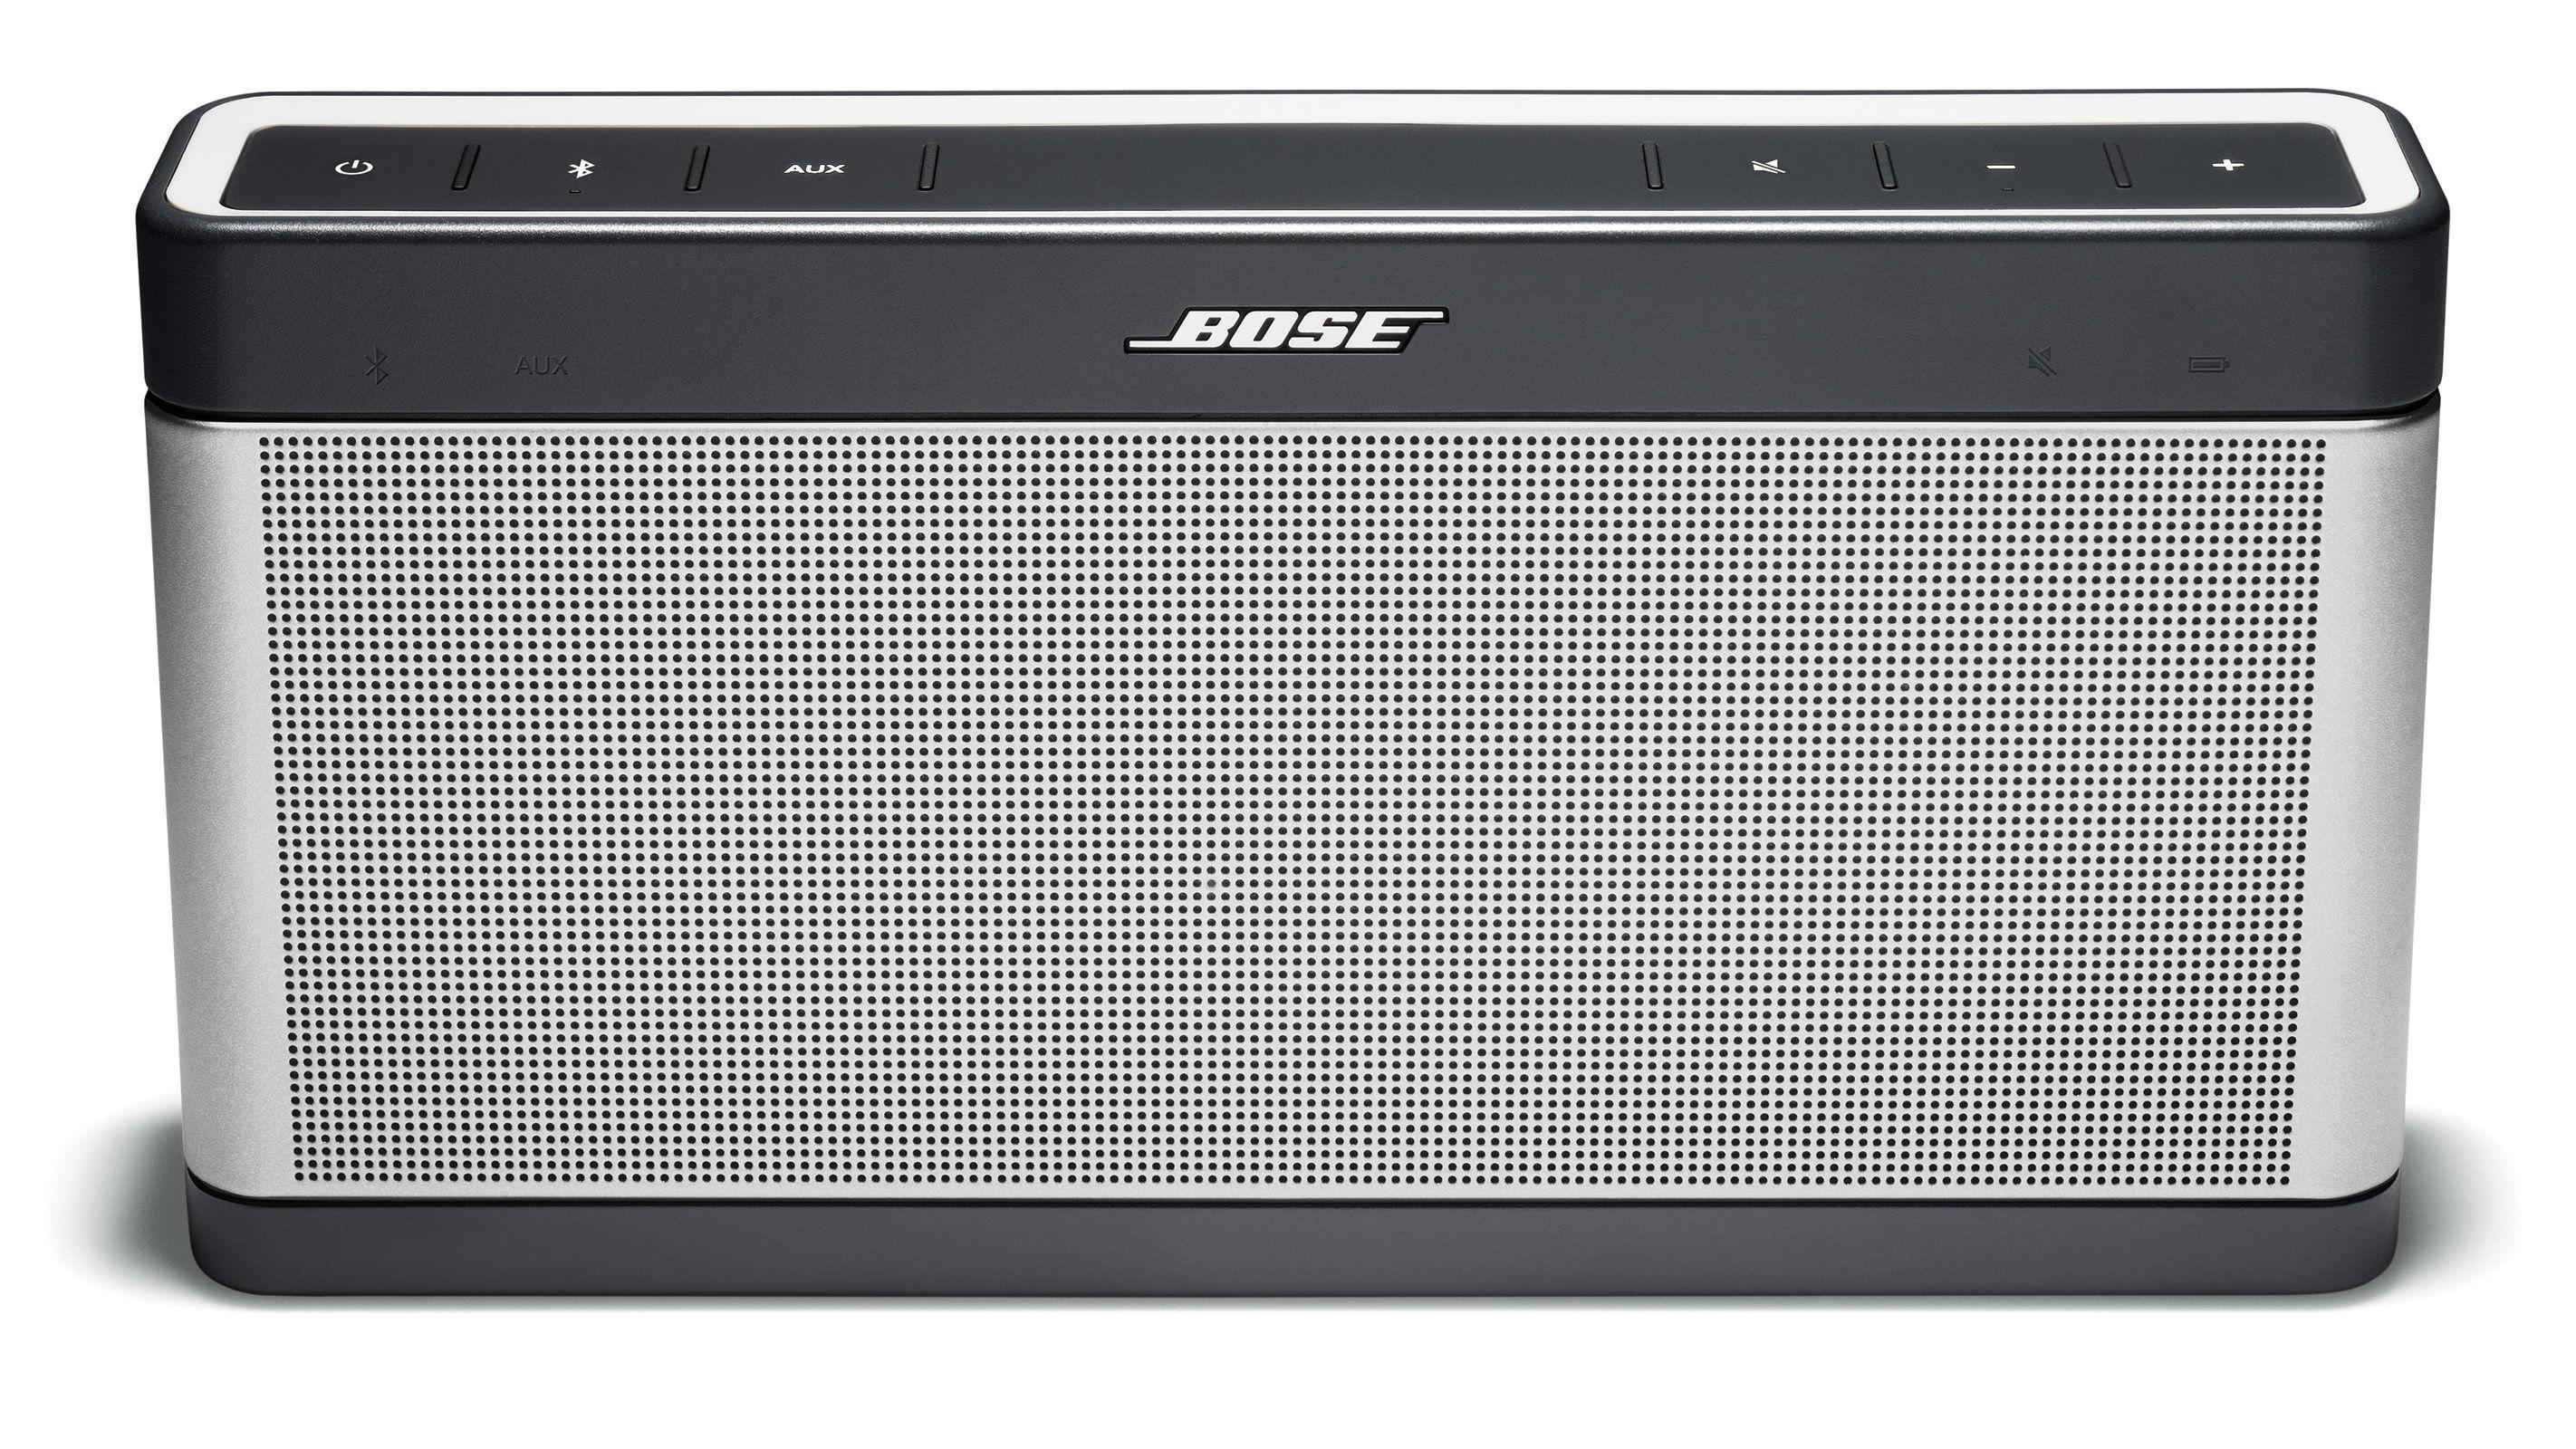 Bose Introduces Soundlink Bluetooth Speaker Iii Digital